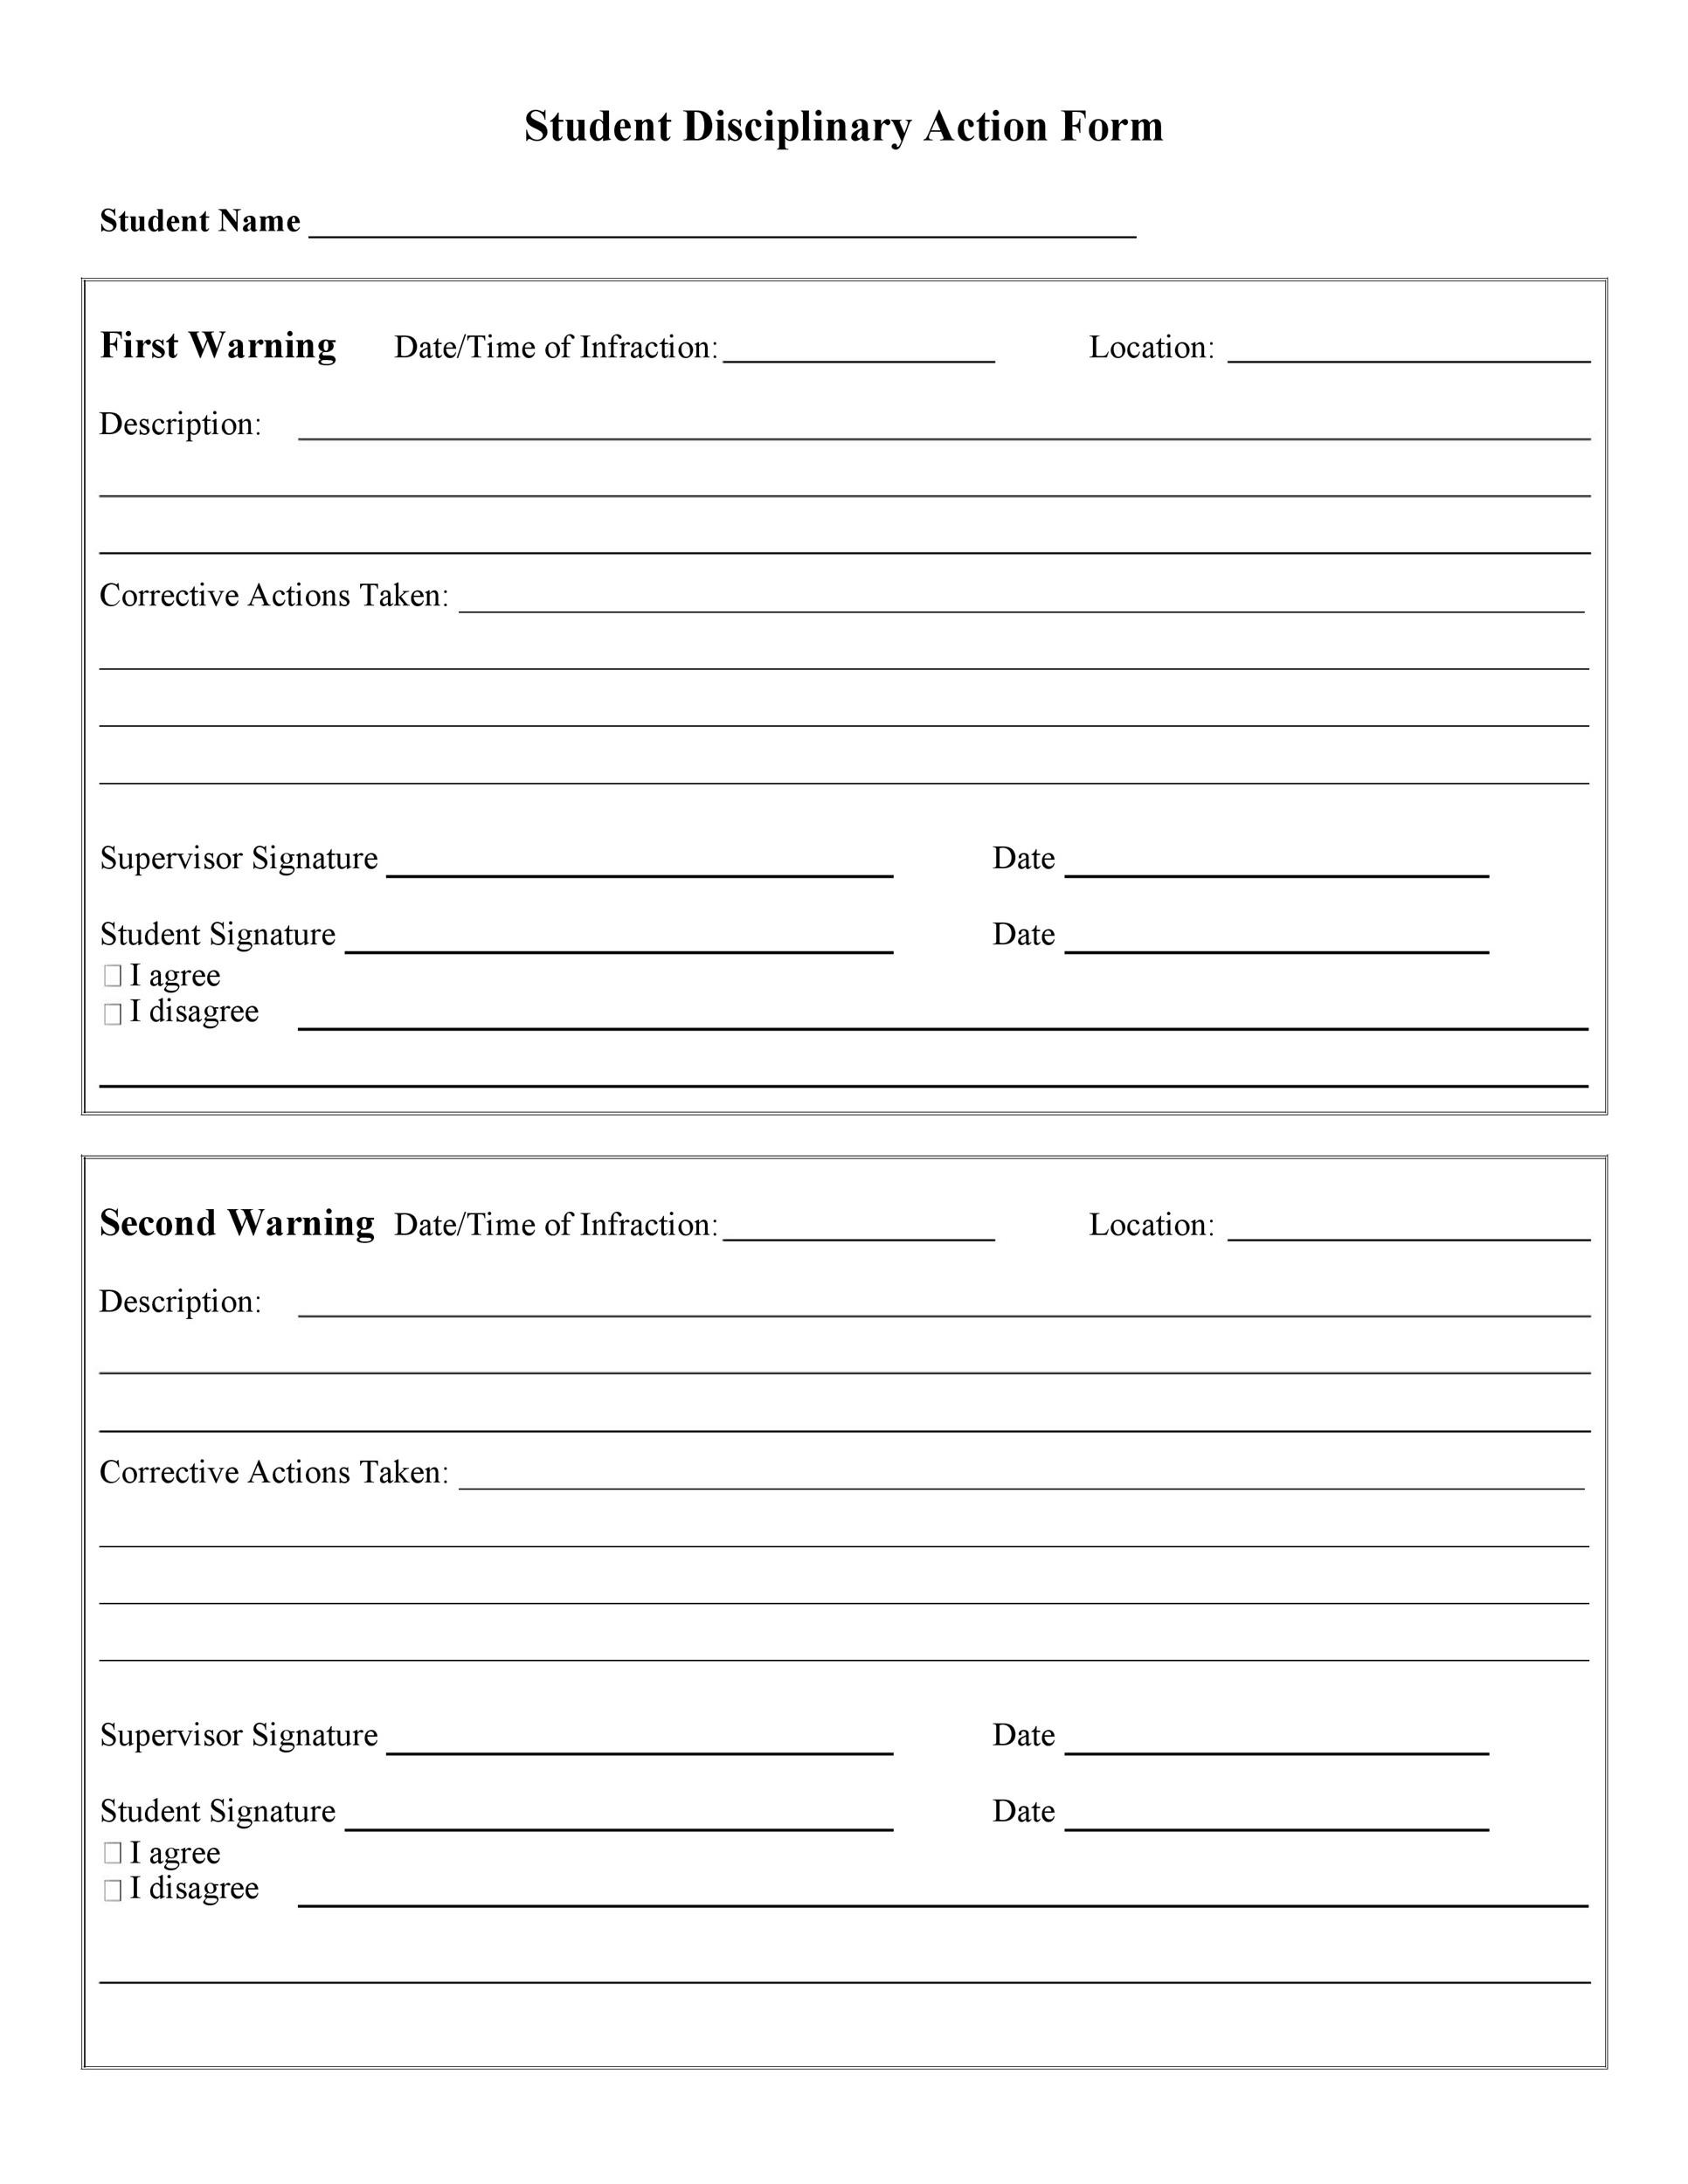 Free Disciplinary Action Form 37